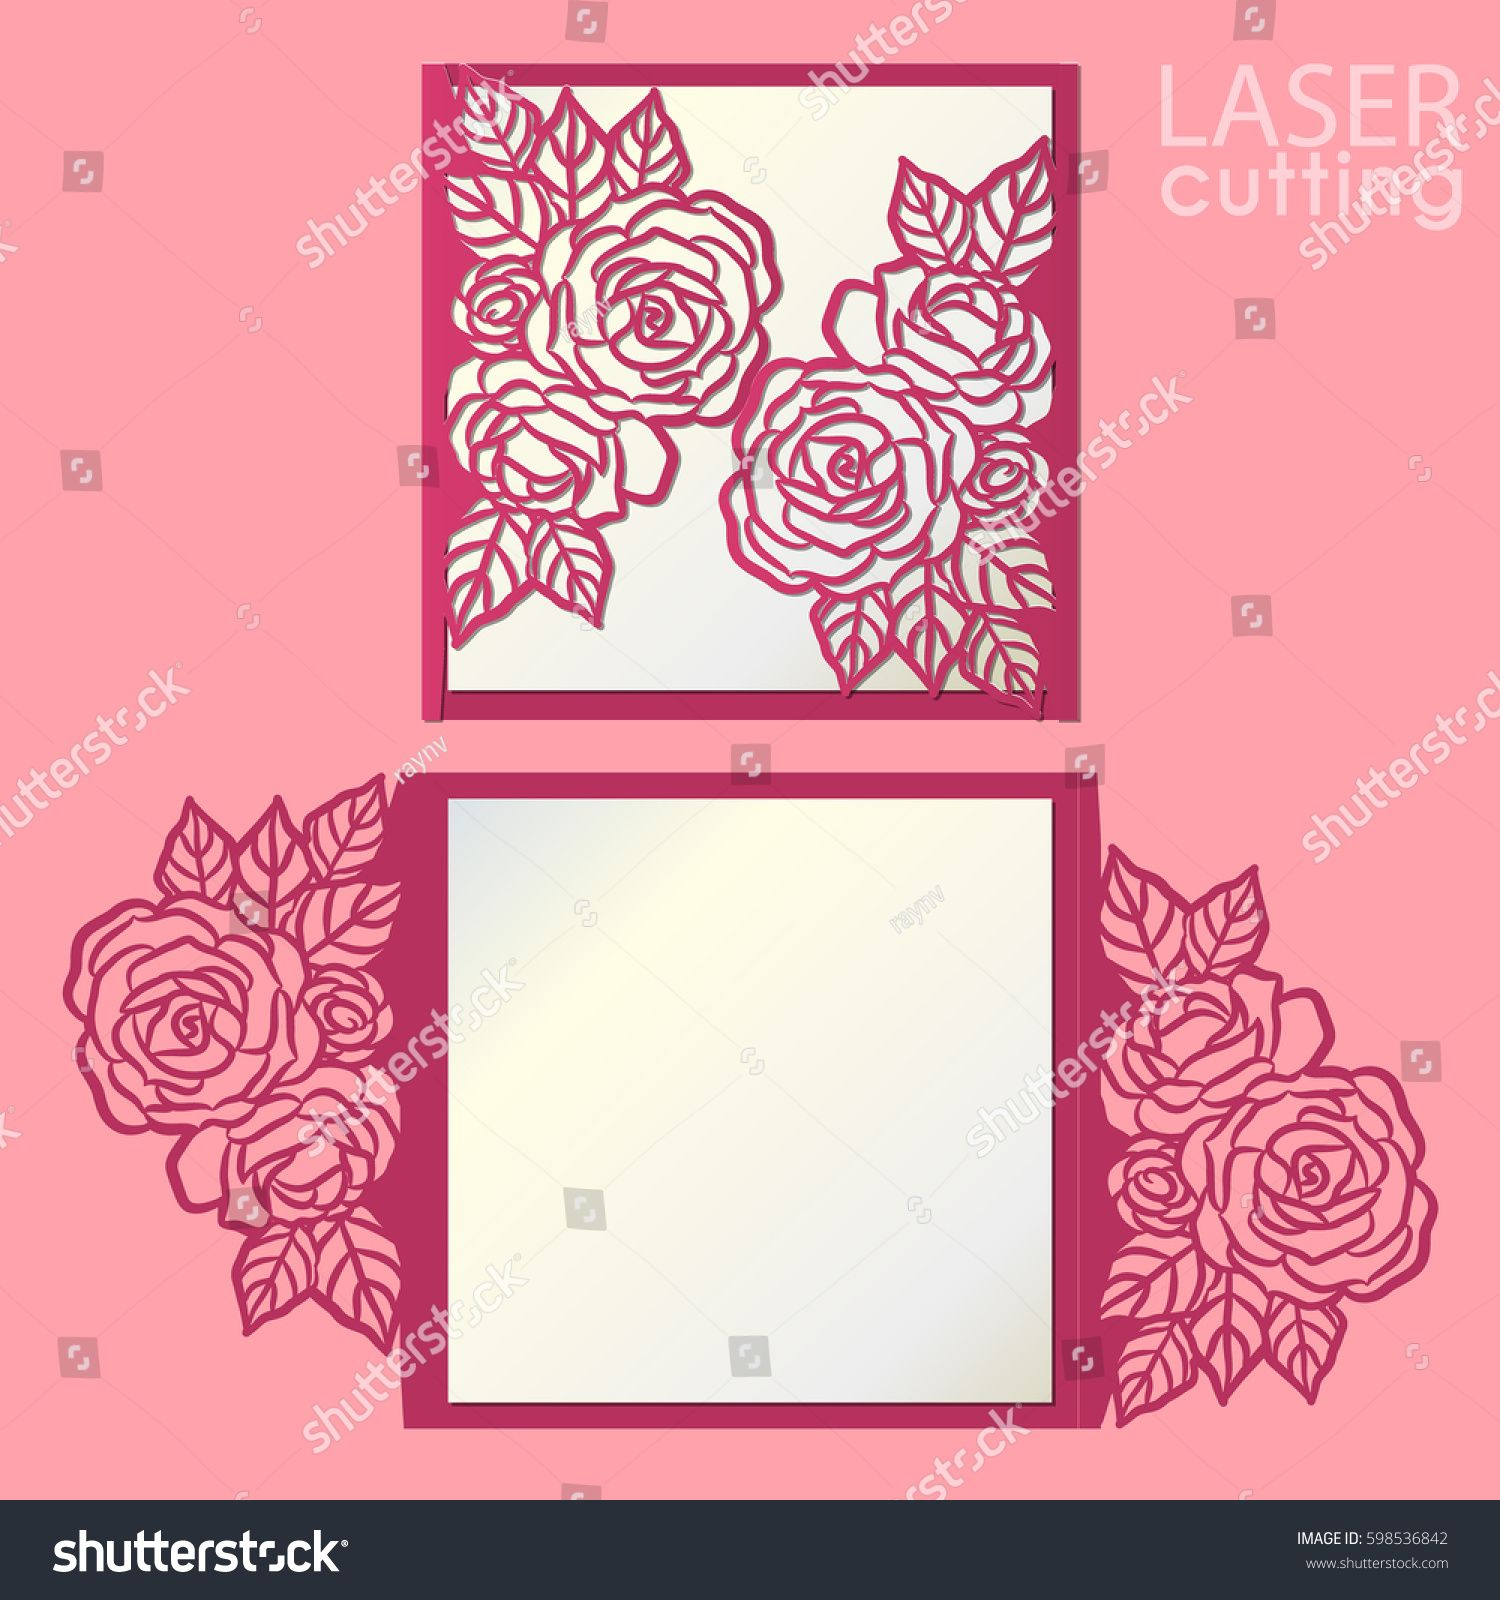 Vector die laser cut envelope template with rose flower wedding vector die laser cut envelope template with rose flower wedding lace invitation mockup cutout paper gate fold card for laser cutting or die cutting mightylinksfo